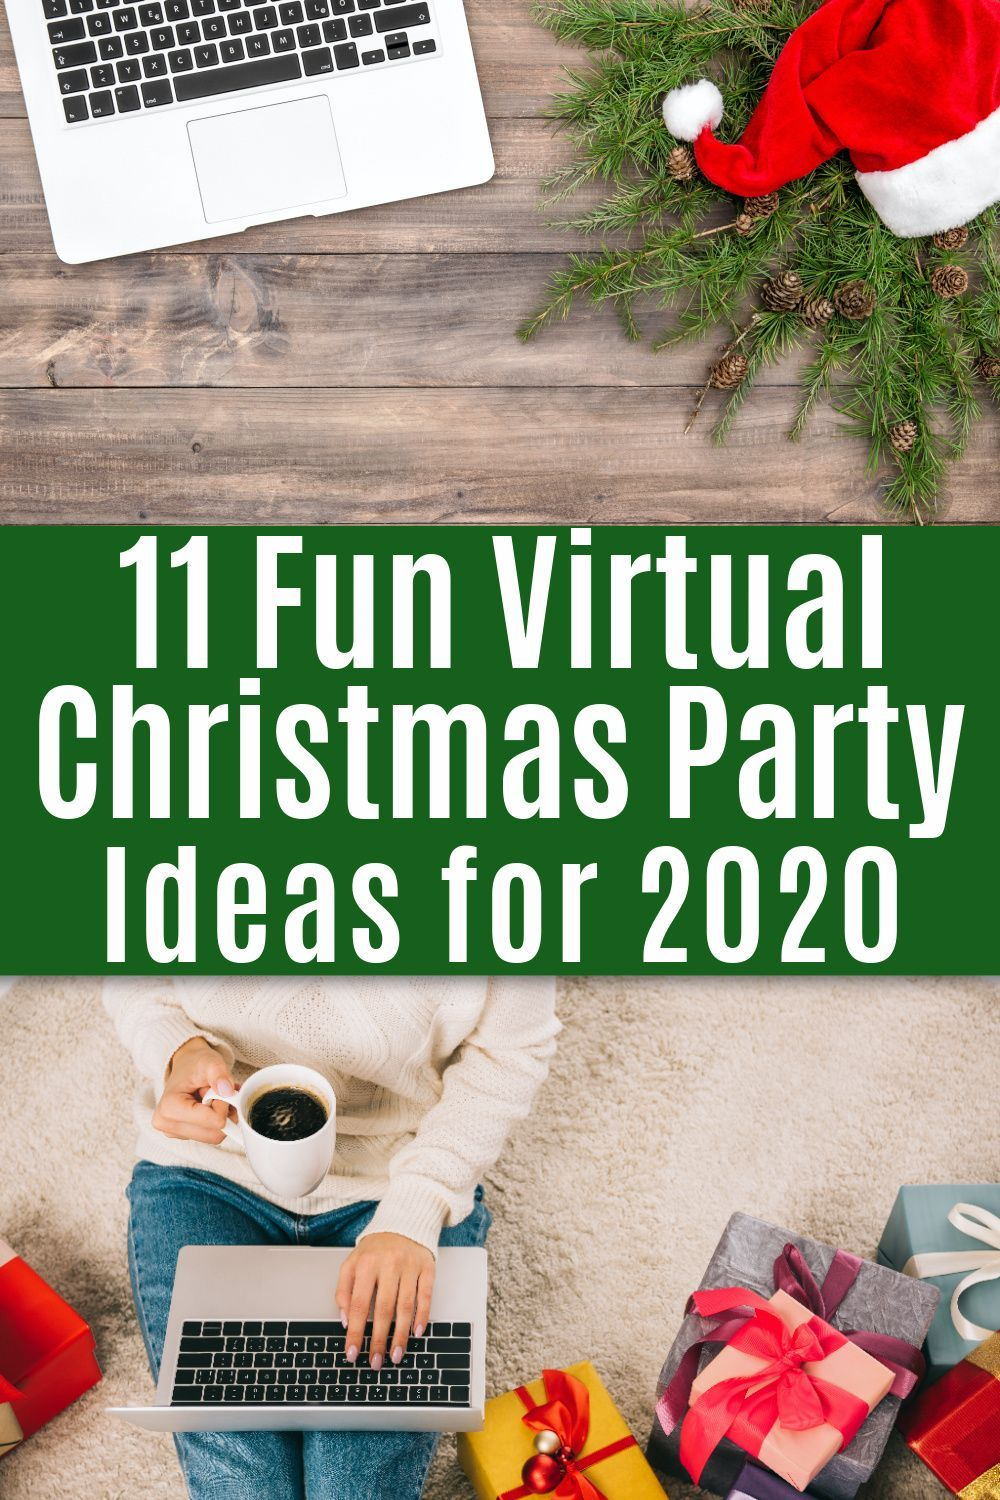 11 Virtual Christmas Party Ideas You Need In 2020 In 2020 Fun Christmas Party Ideas Family Christmas Party Christmas Party Photo